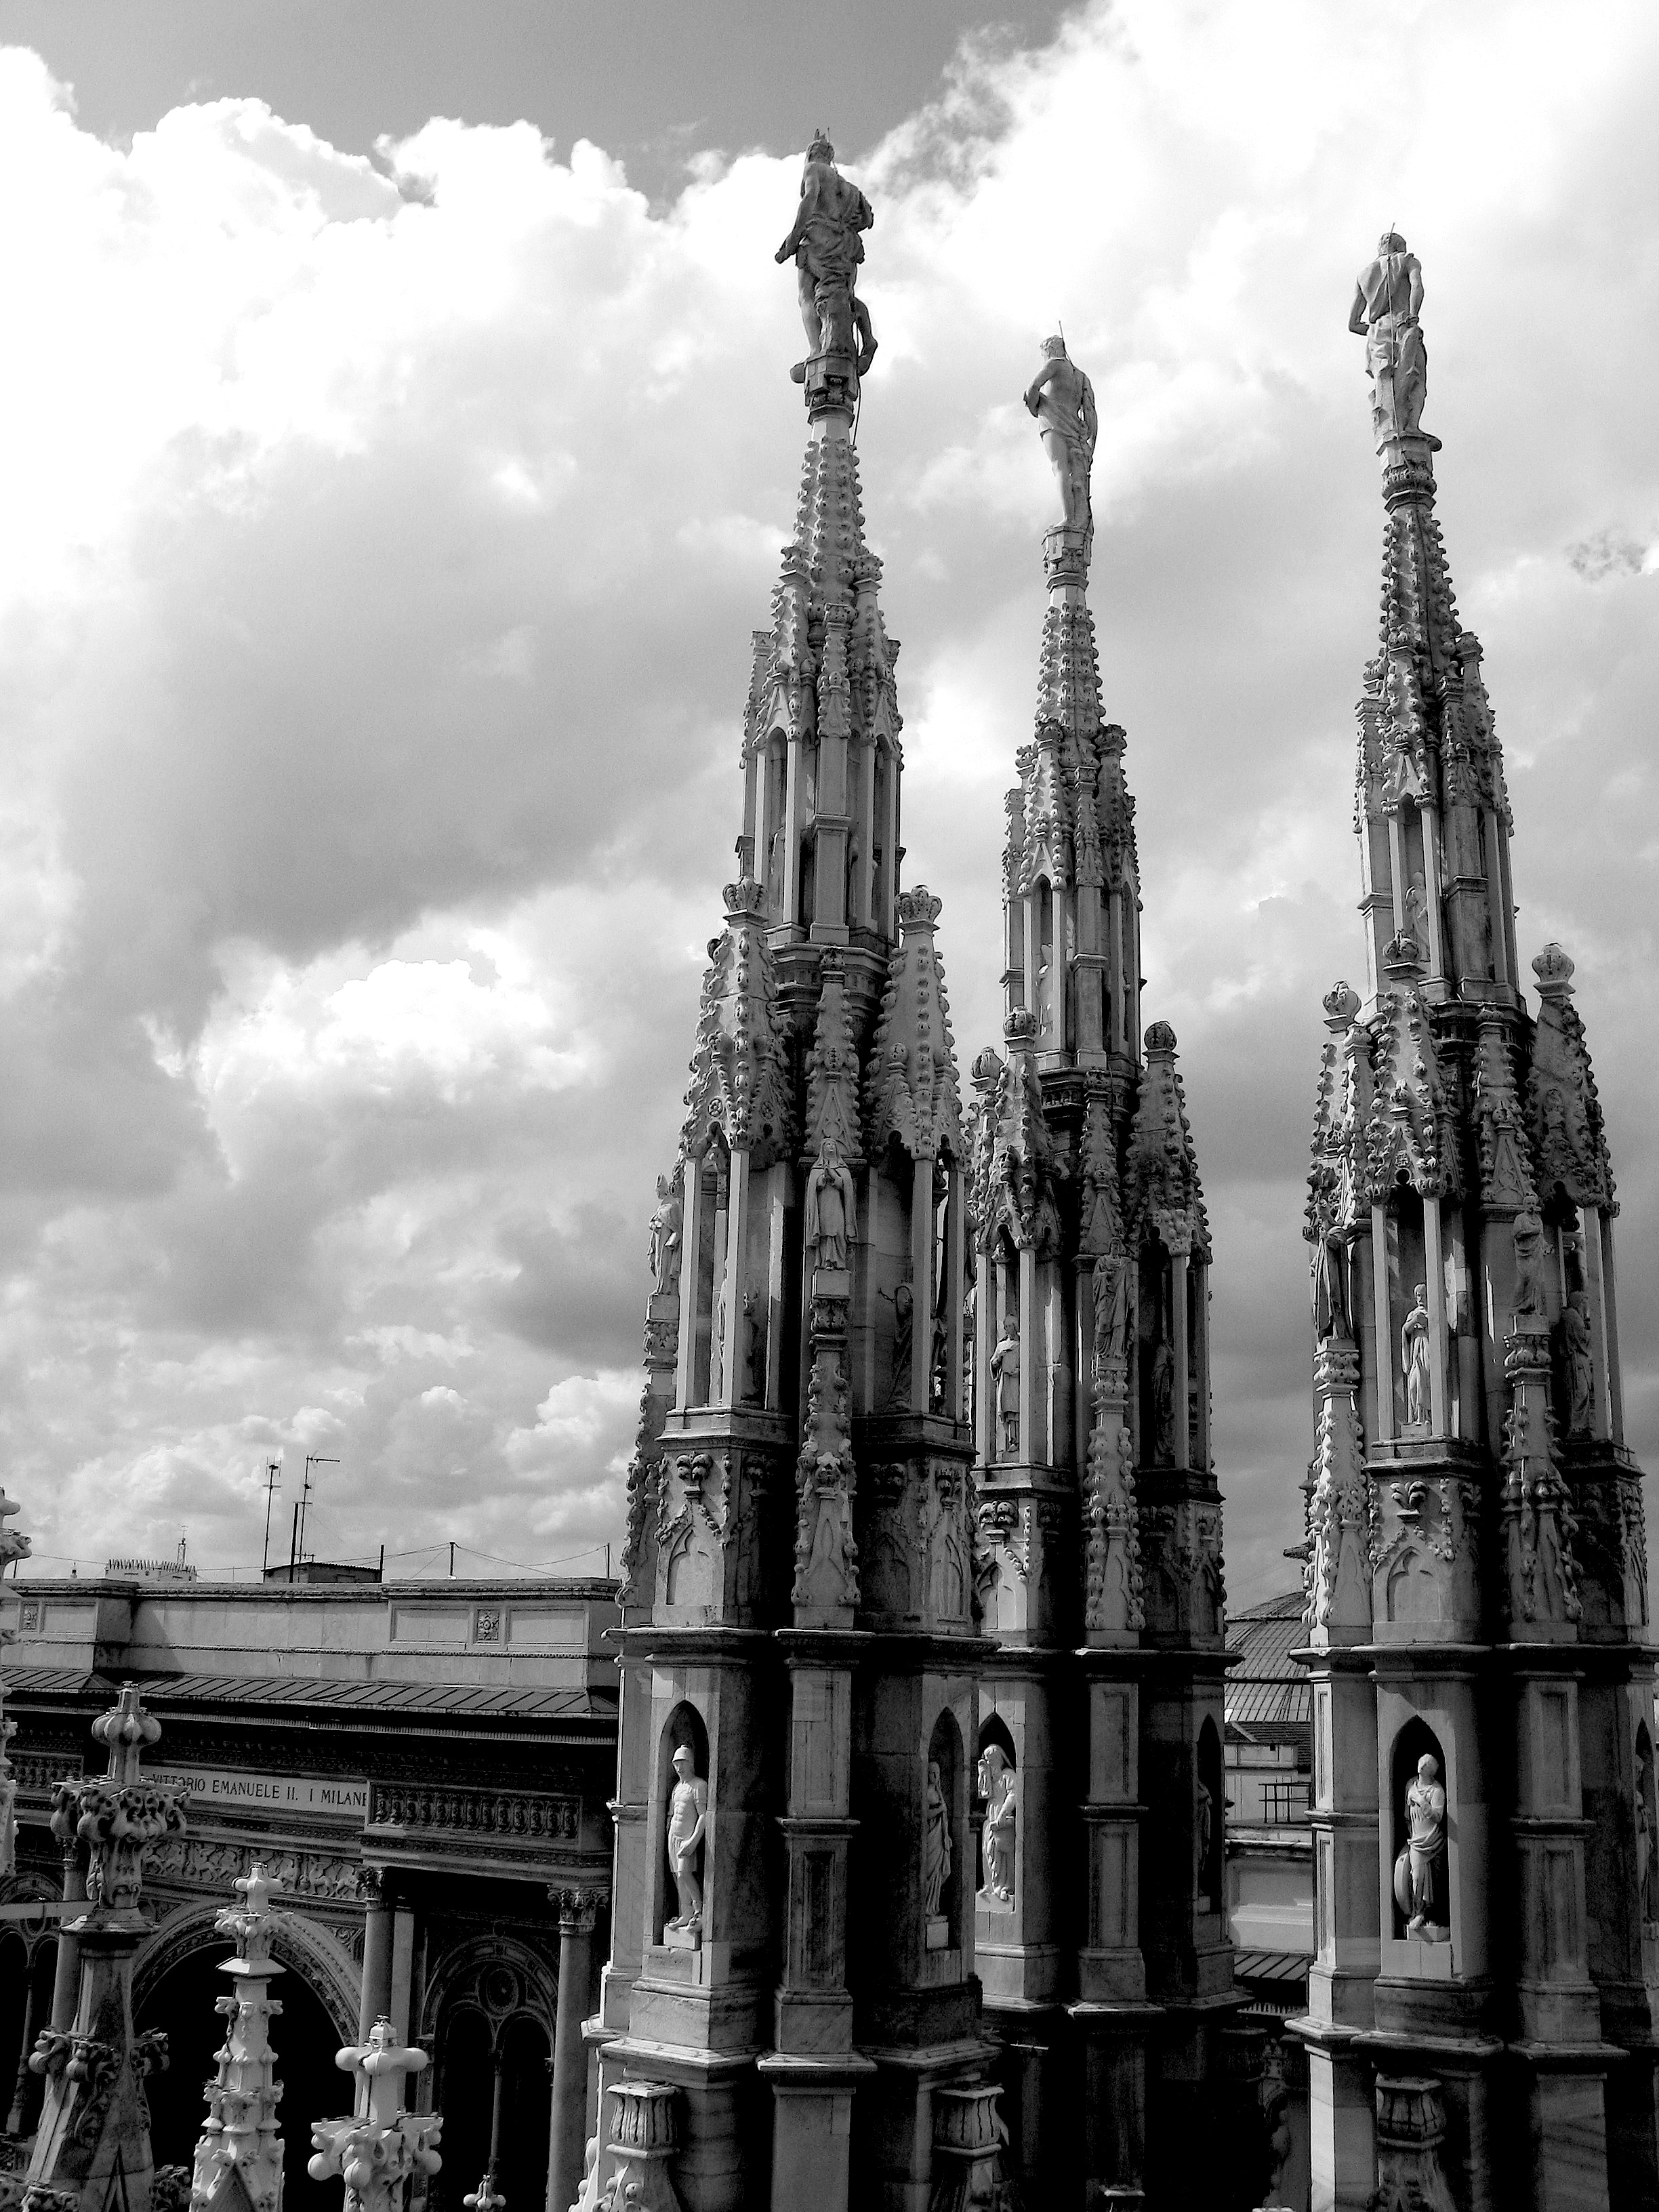 The best part of the Milan Cathedral is its expansive rooftop